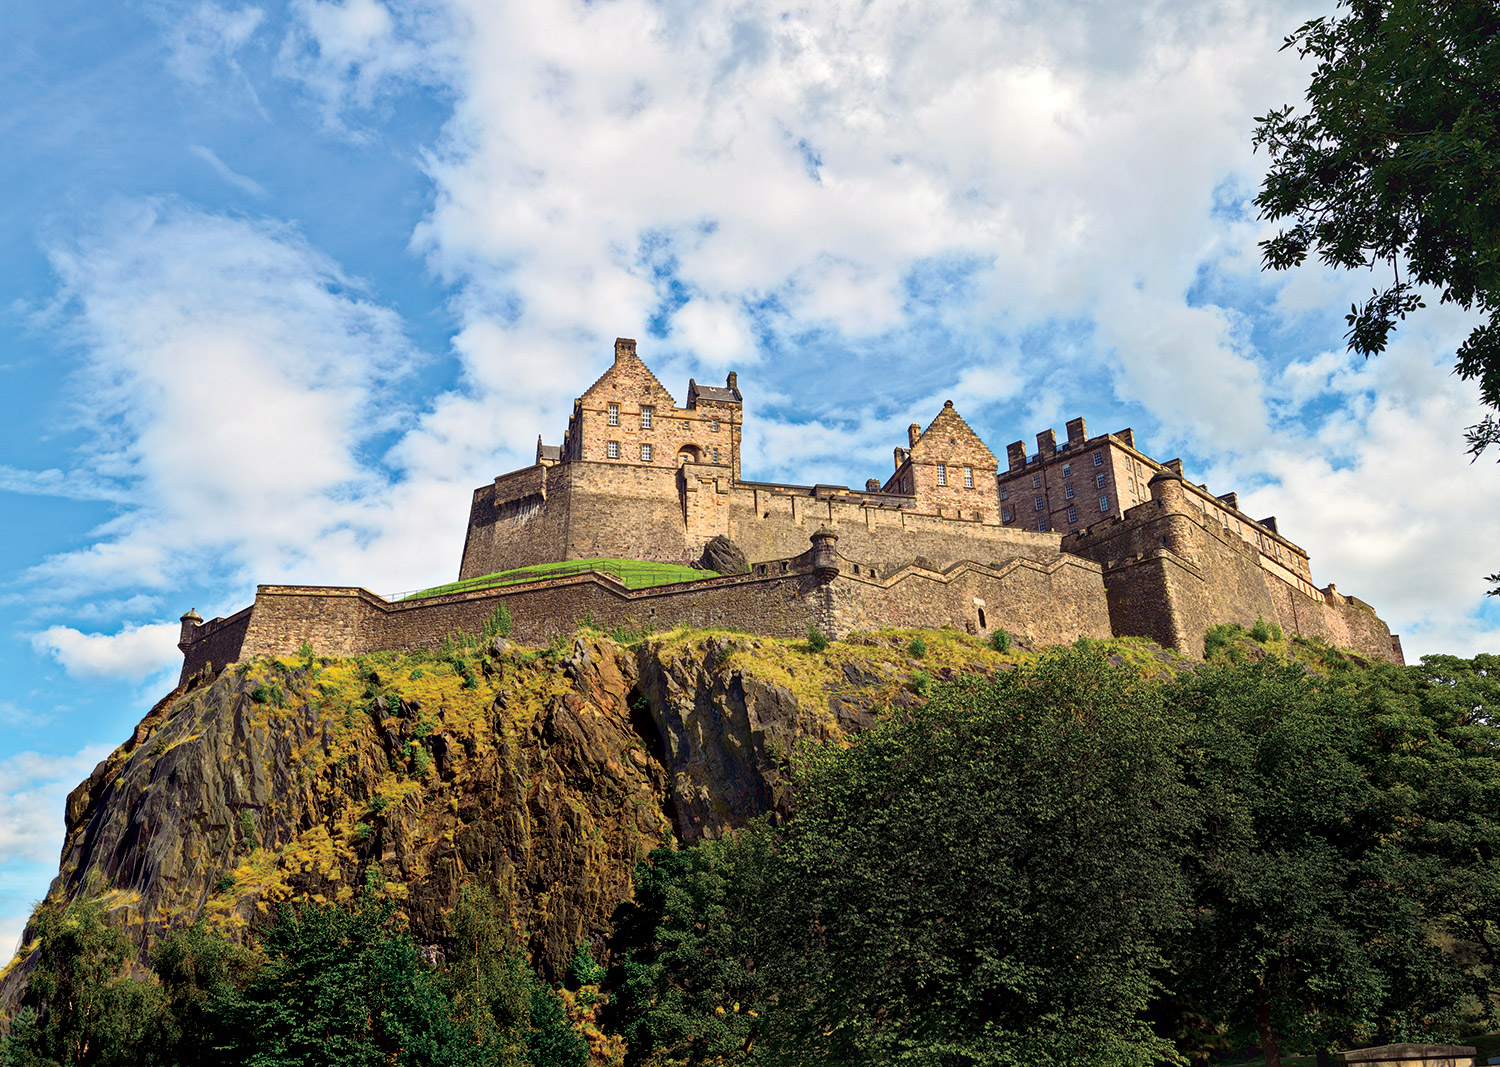 Edinburgh Castle from the west